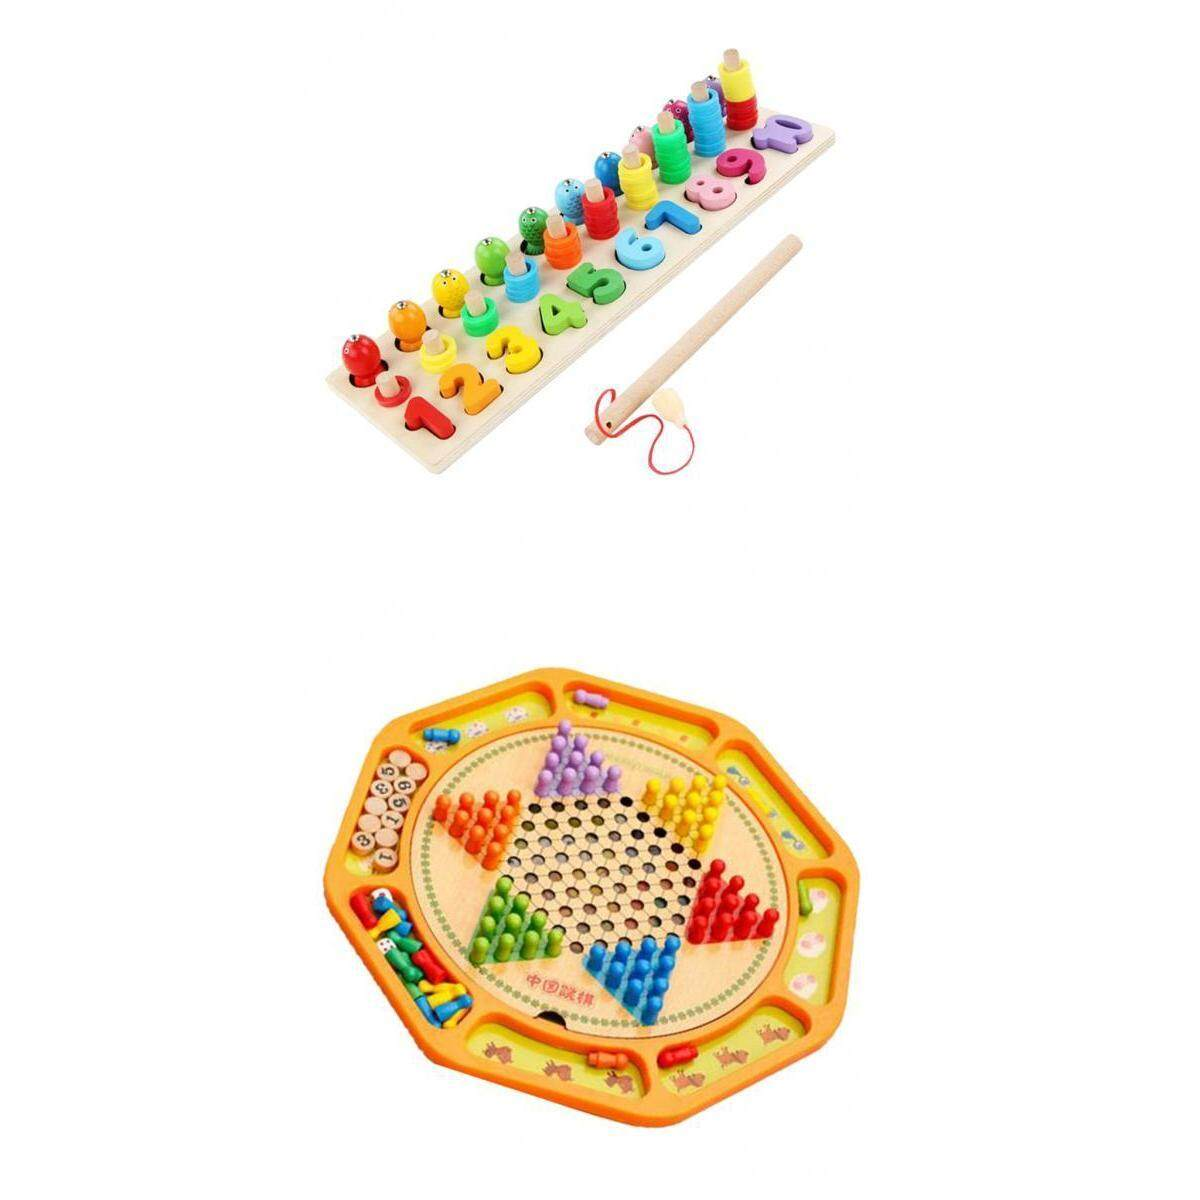 BolehDeals Chinese Checkers 12 Wooden Chessboard with Wooden Fishing Toy for Kids Play